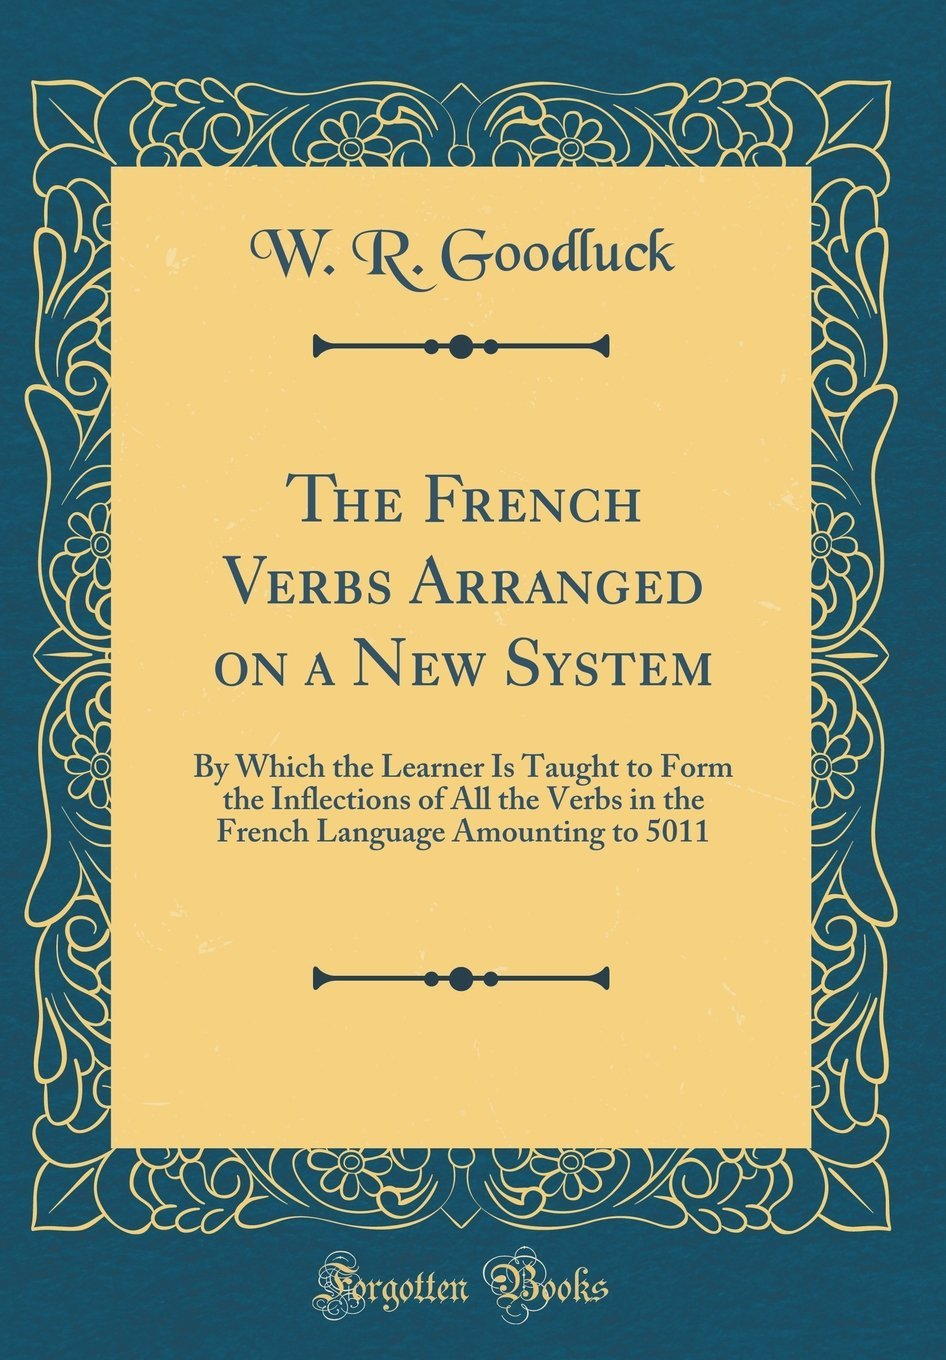 The French Verbs Arranged on a New System: By Which the Learner Is Taught to Form the Inflections of All the Verbs in the French Language Amounting to 5011 (Classic Reprint) pdf epub